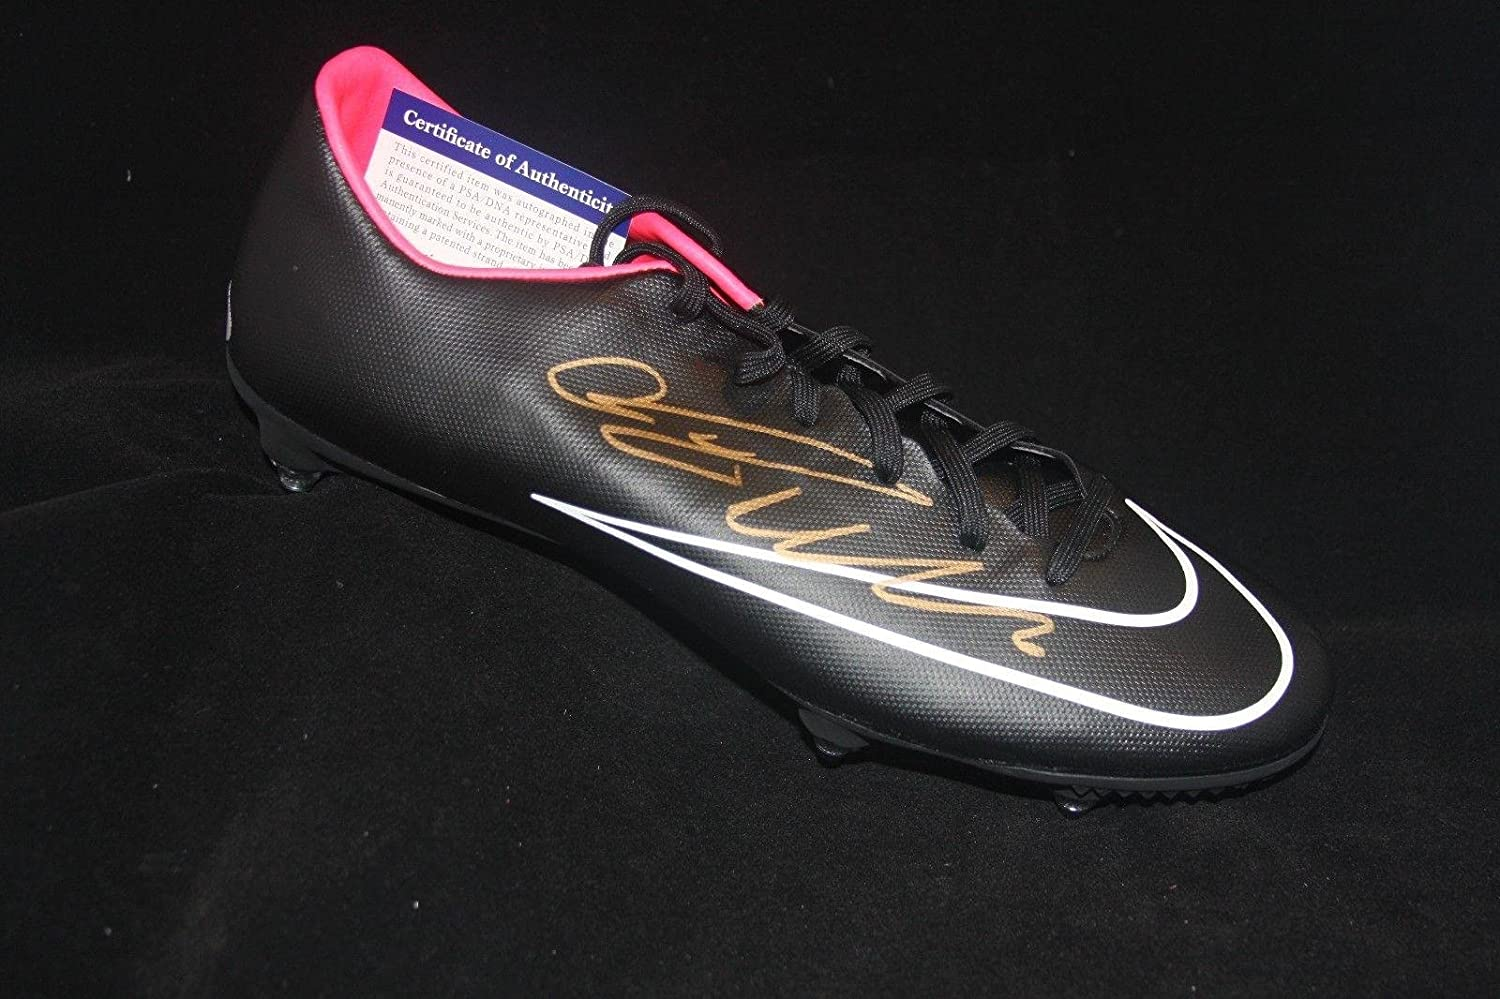 official photos 92f9a b05a0 Cristiano Ronaldo Autographed Soccer Shoe Certified - PSA DNA Certified - Autographed  Soccer Cleats at Amazon s Sports Collectibles Store